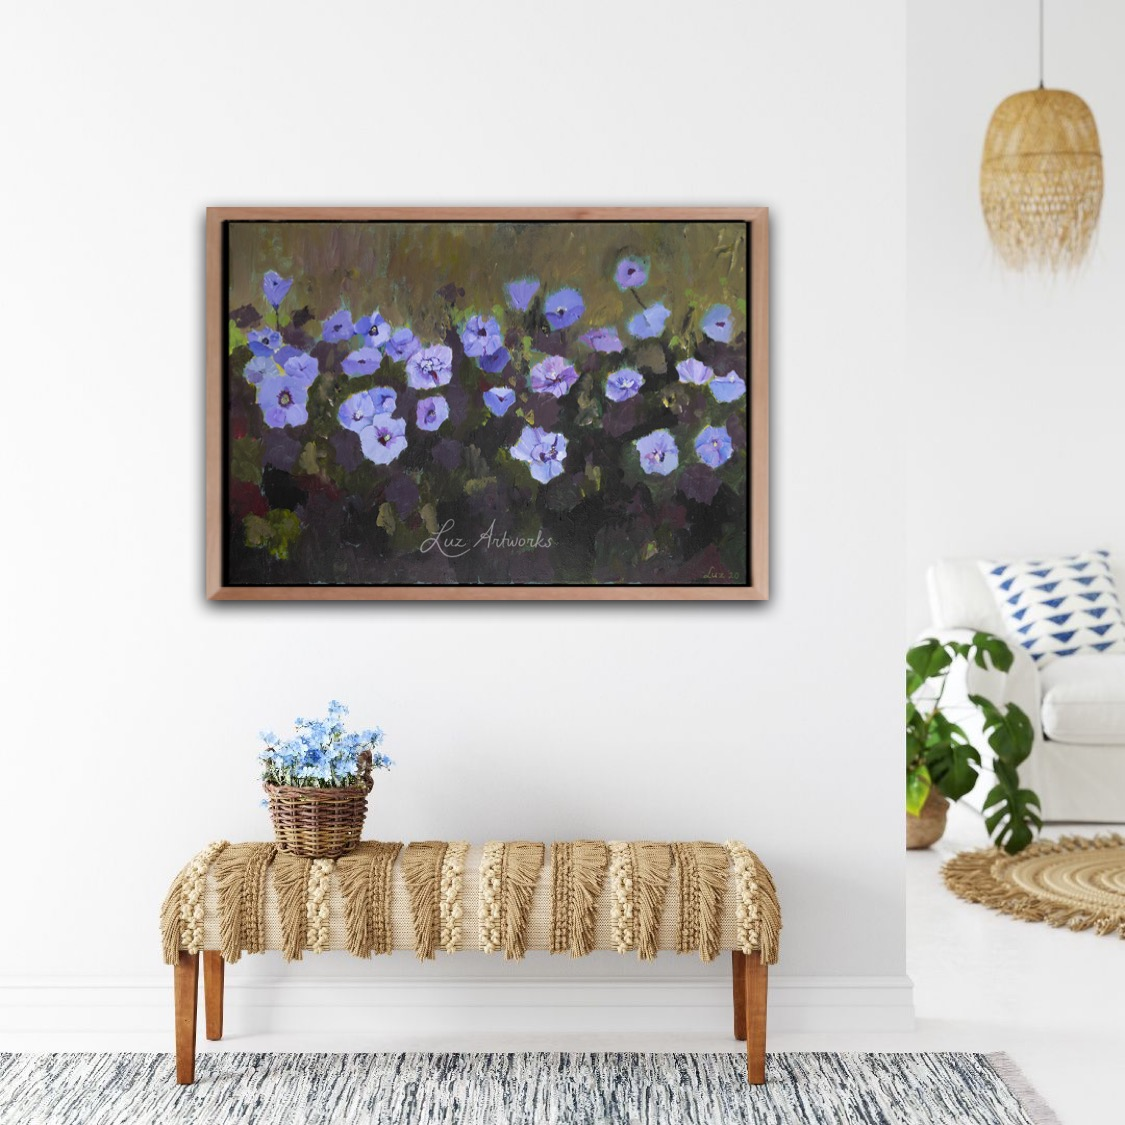 Painting Hibiscus by Marloes Bloedjes - on the wall